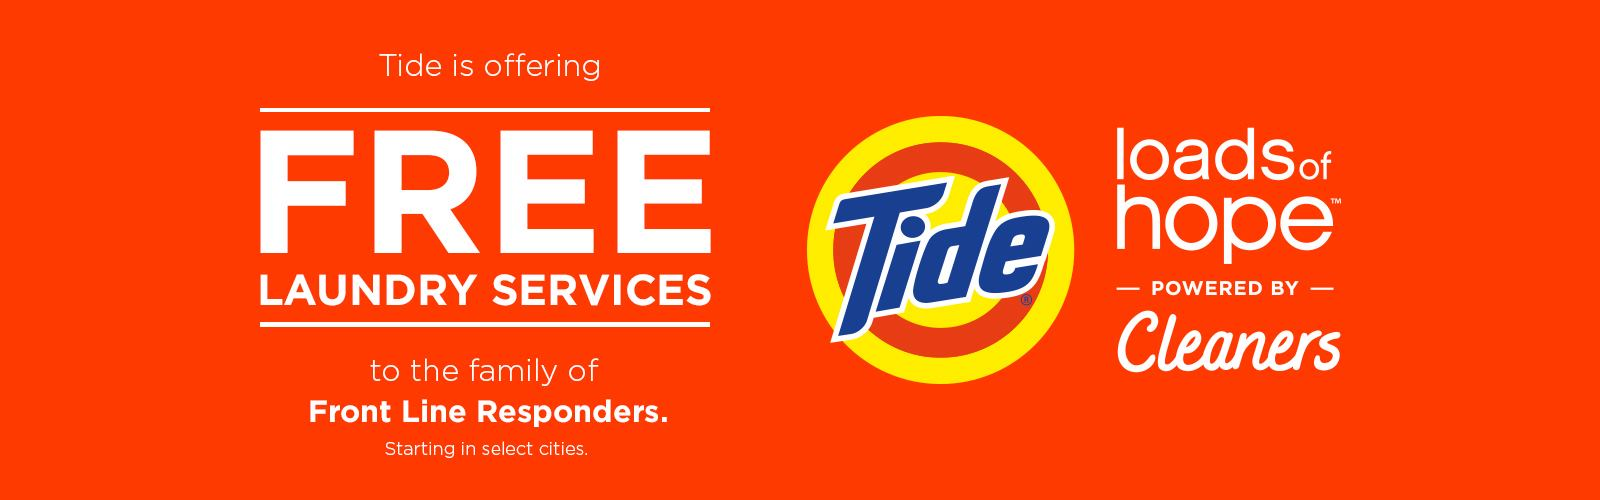 Tide Cleaner Project Hope offering free laundry services to first responders.